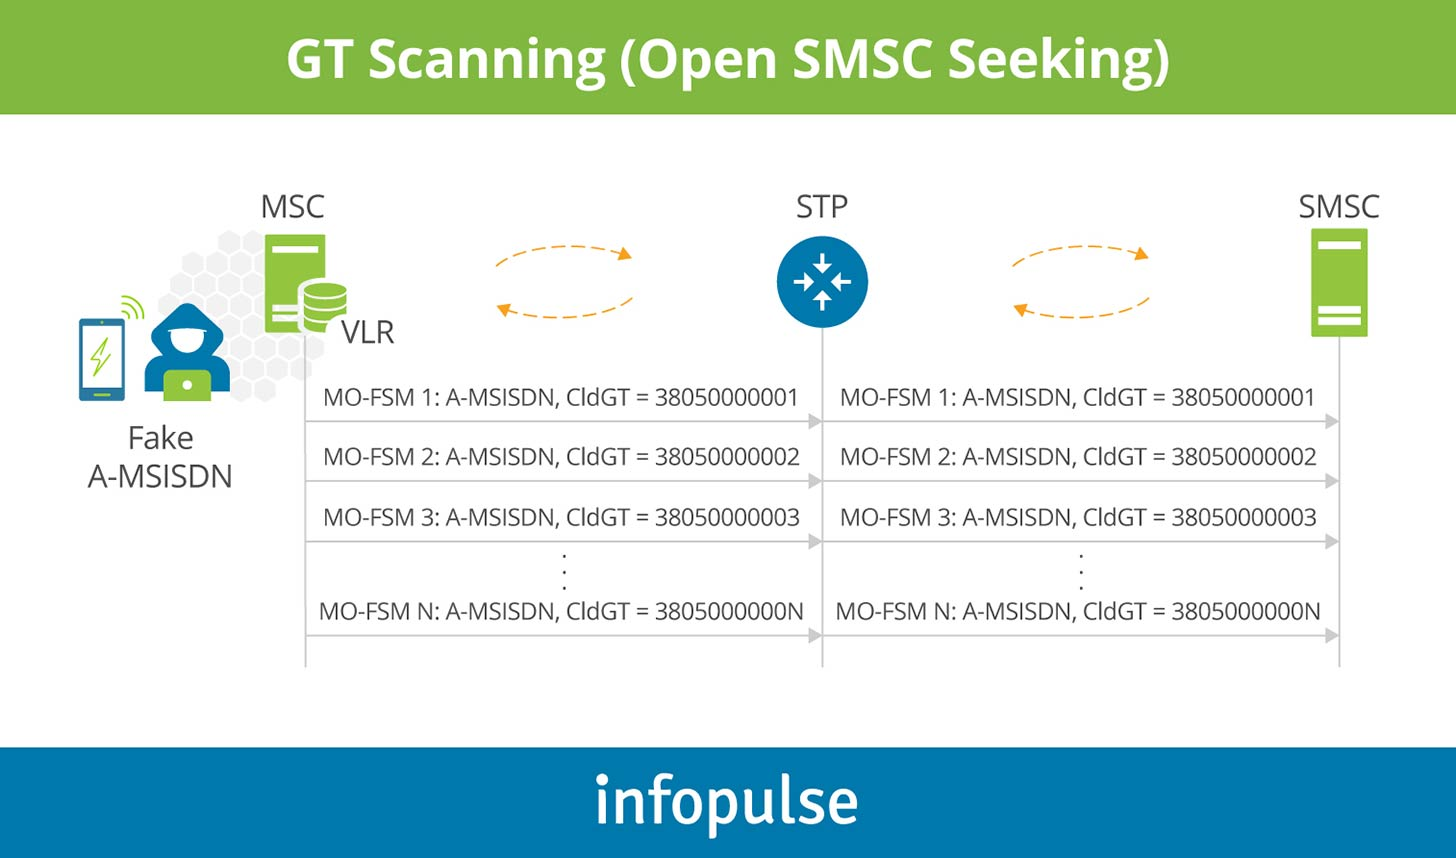 GT scanning - Infopulse - 3